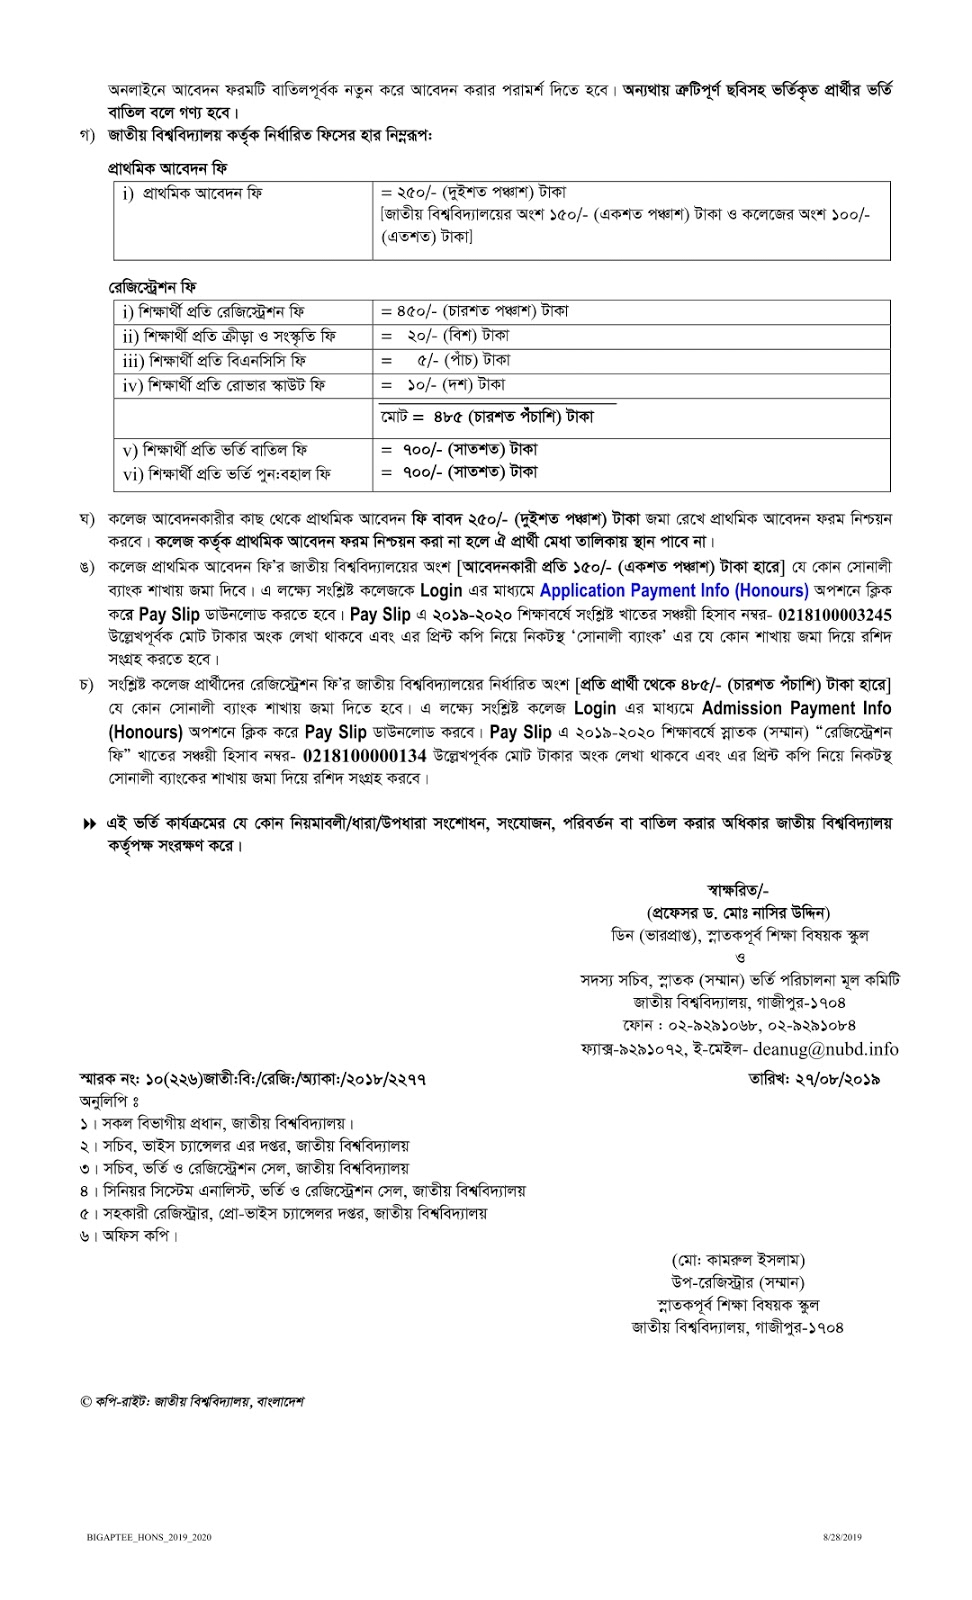 1st year admission